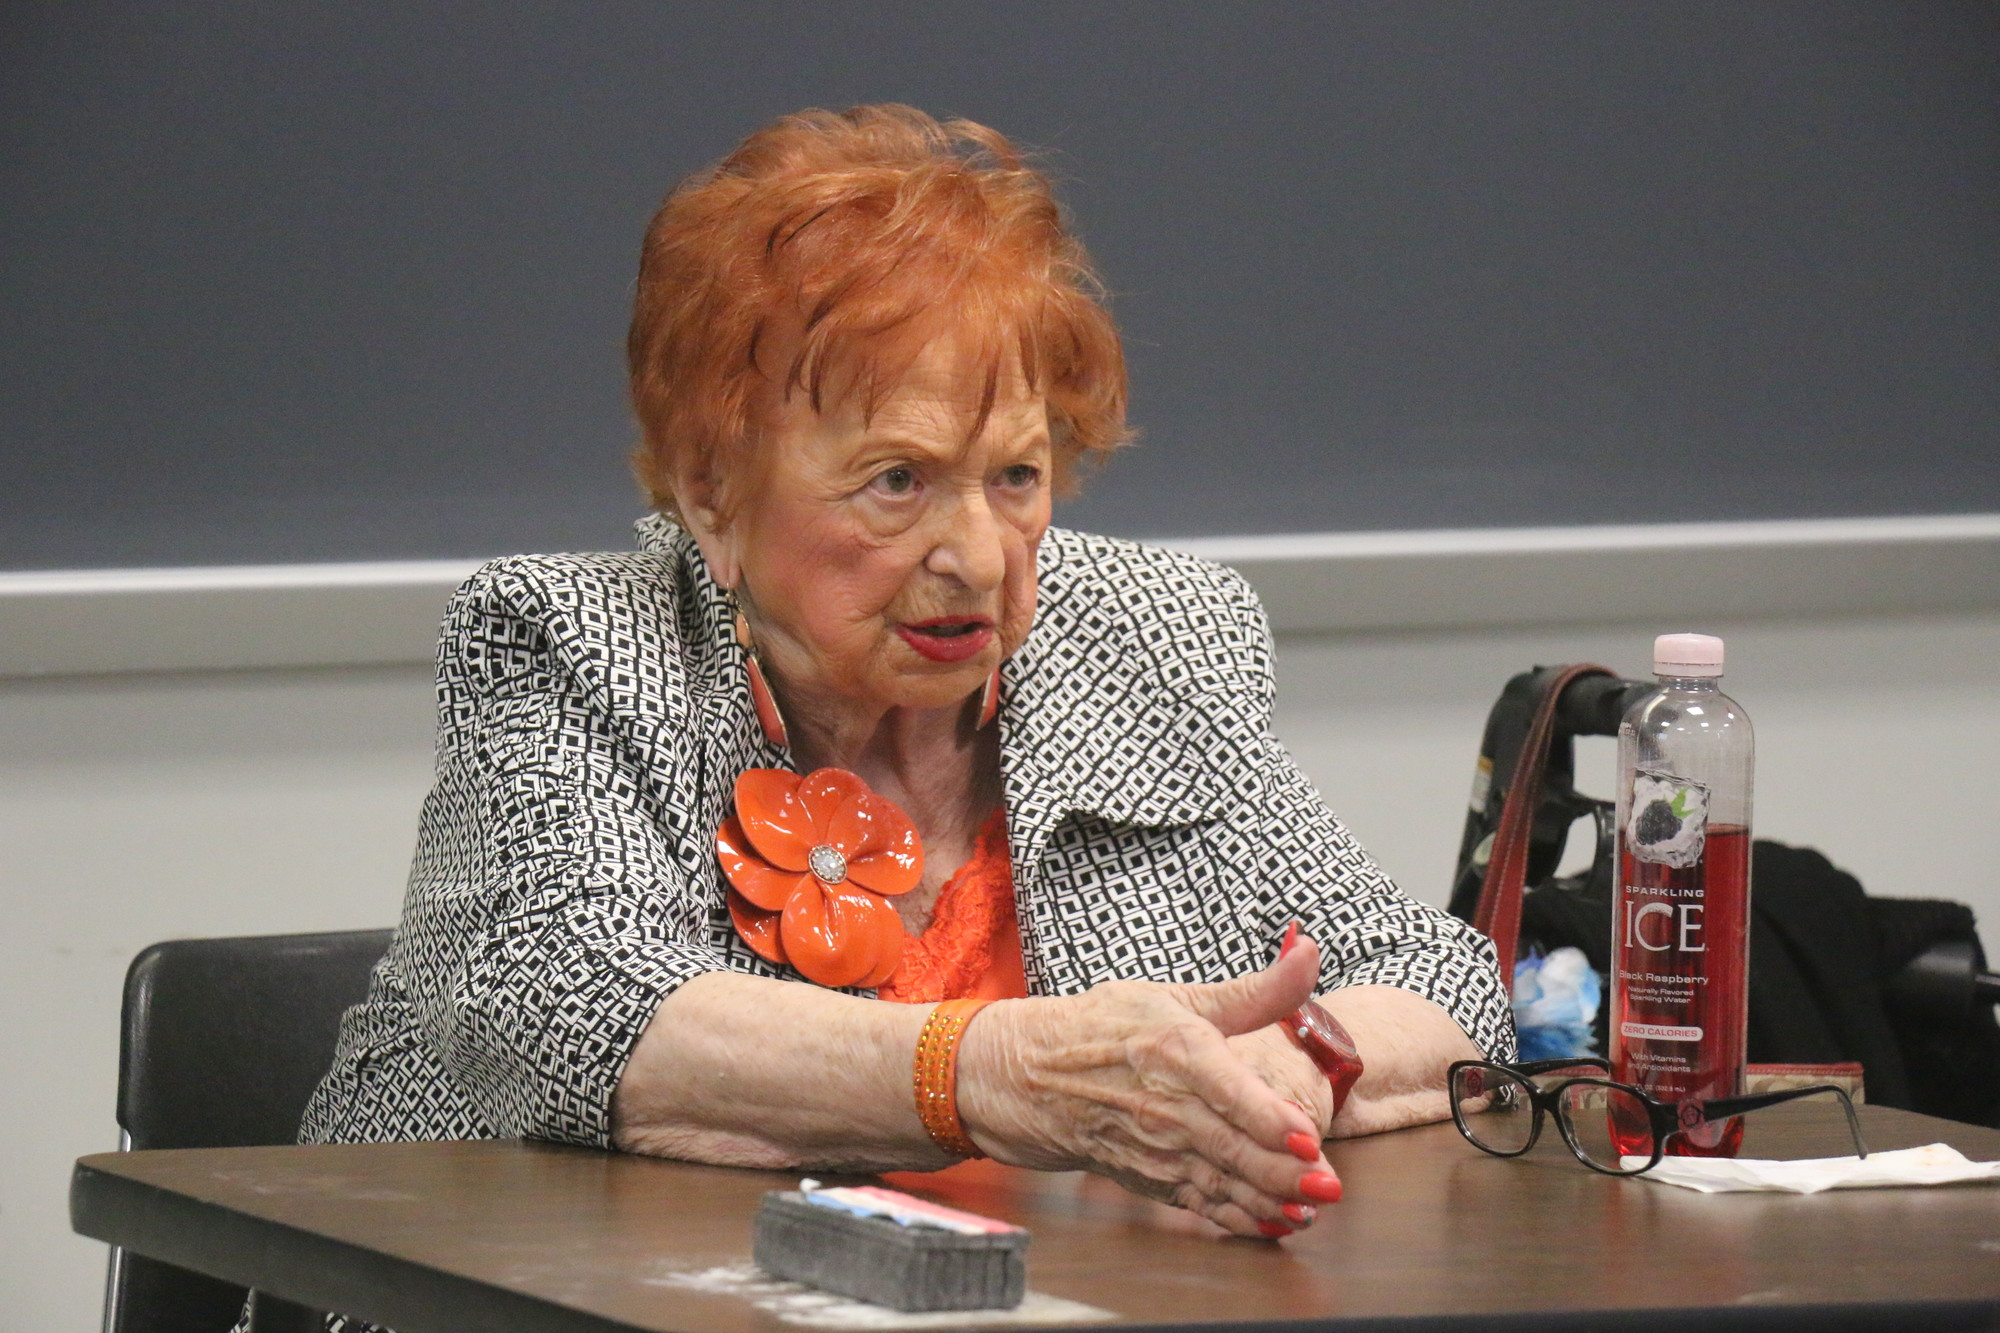 Holocaust survivor Shula Kozuch shared her tale of life at Auschwitz and her liberation.